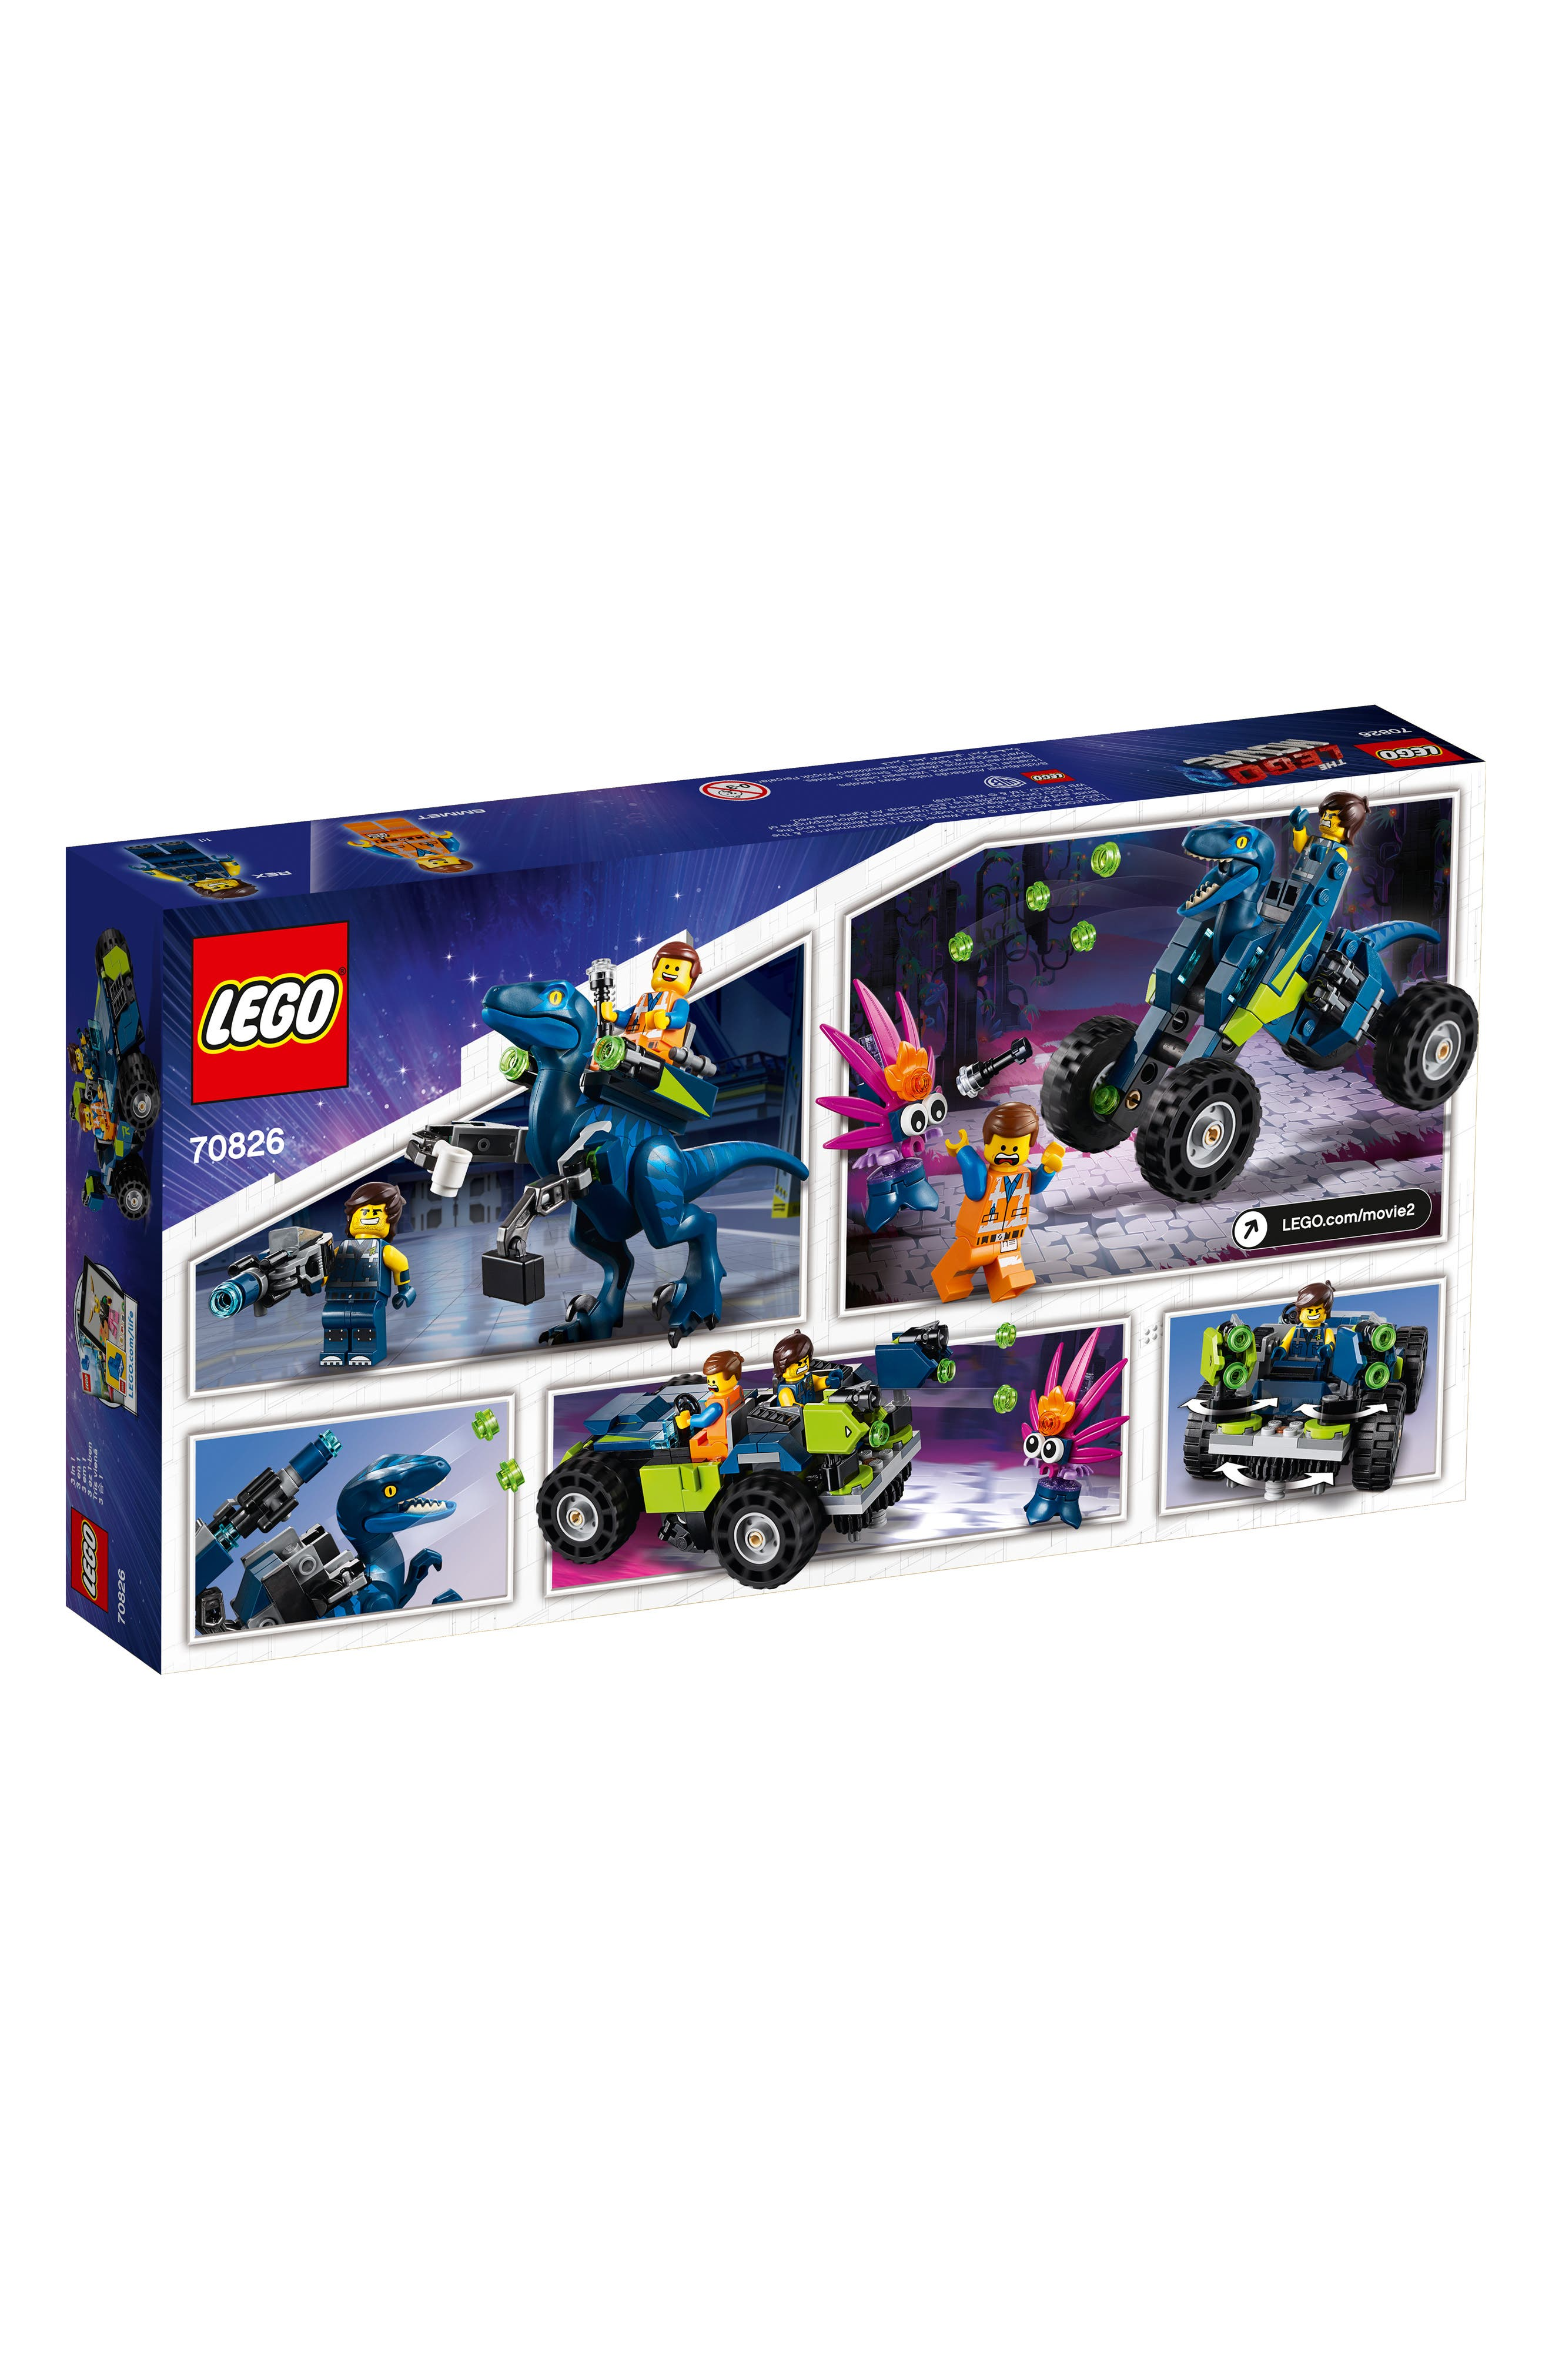 LEGO<SUP>®</SUP>,                             The LEGO<sup>®</sup> Movie 2 Rex's 3-in-1 Rex-treme Offroader Toy - 70826,                             Alternate thumbnail 3, color,                             960